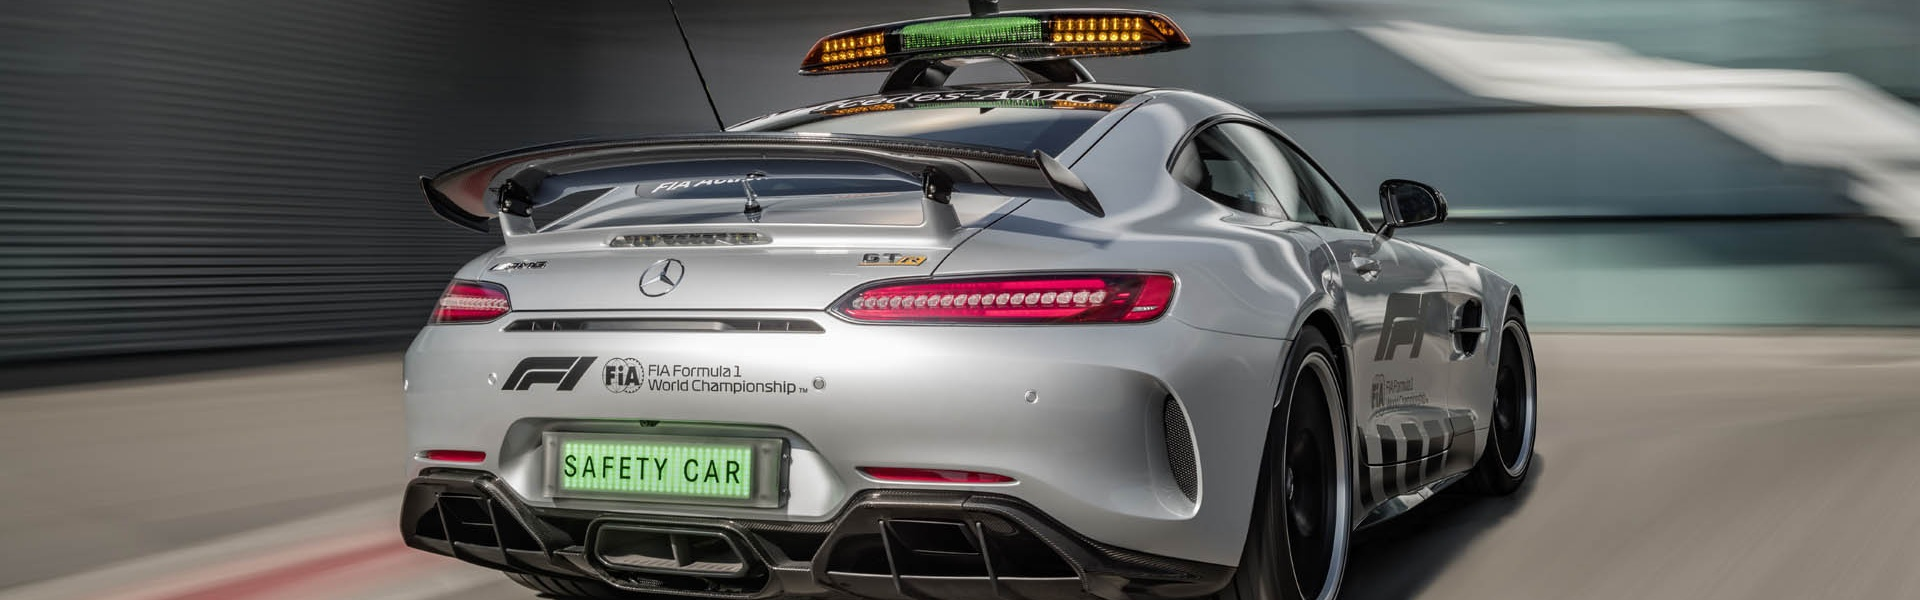 mercedes-amg-gt-r-f1-safety-car-04.jpg